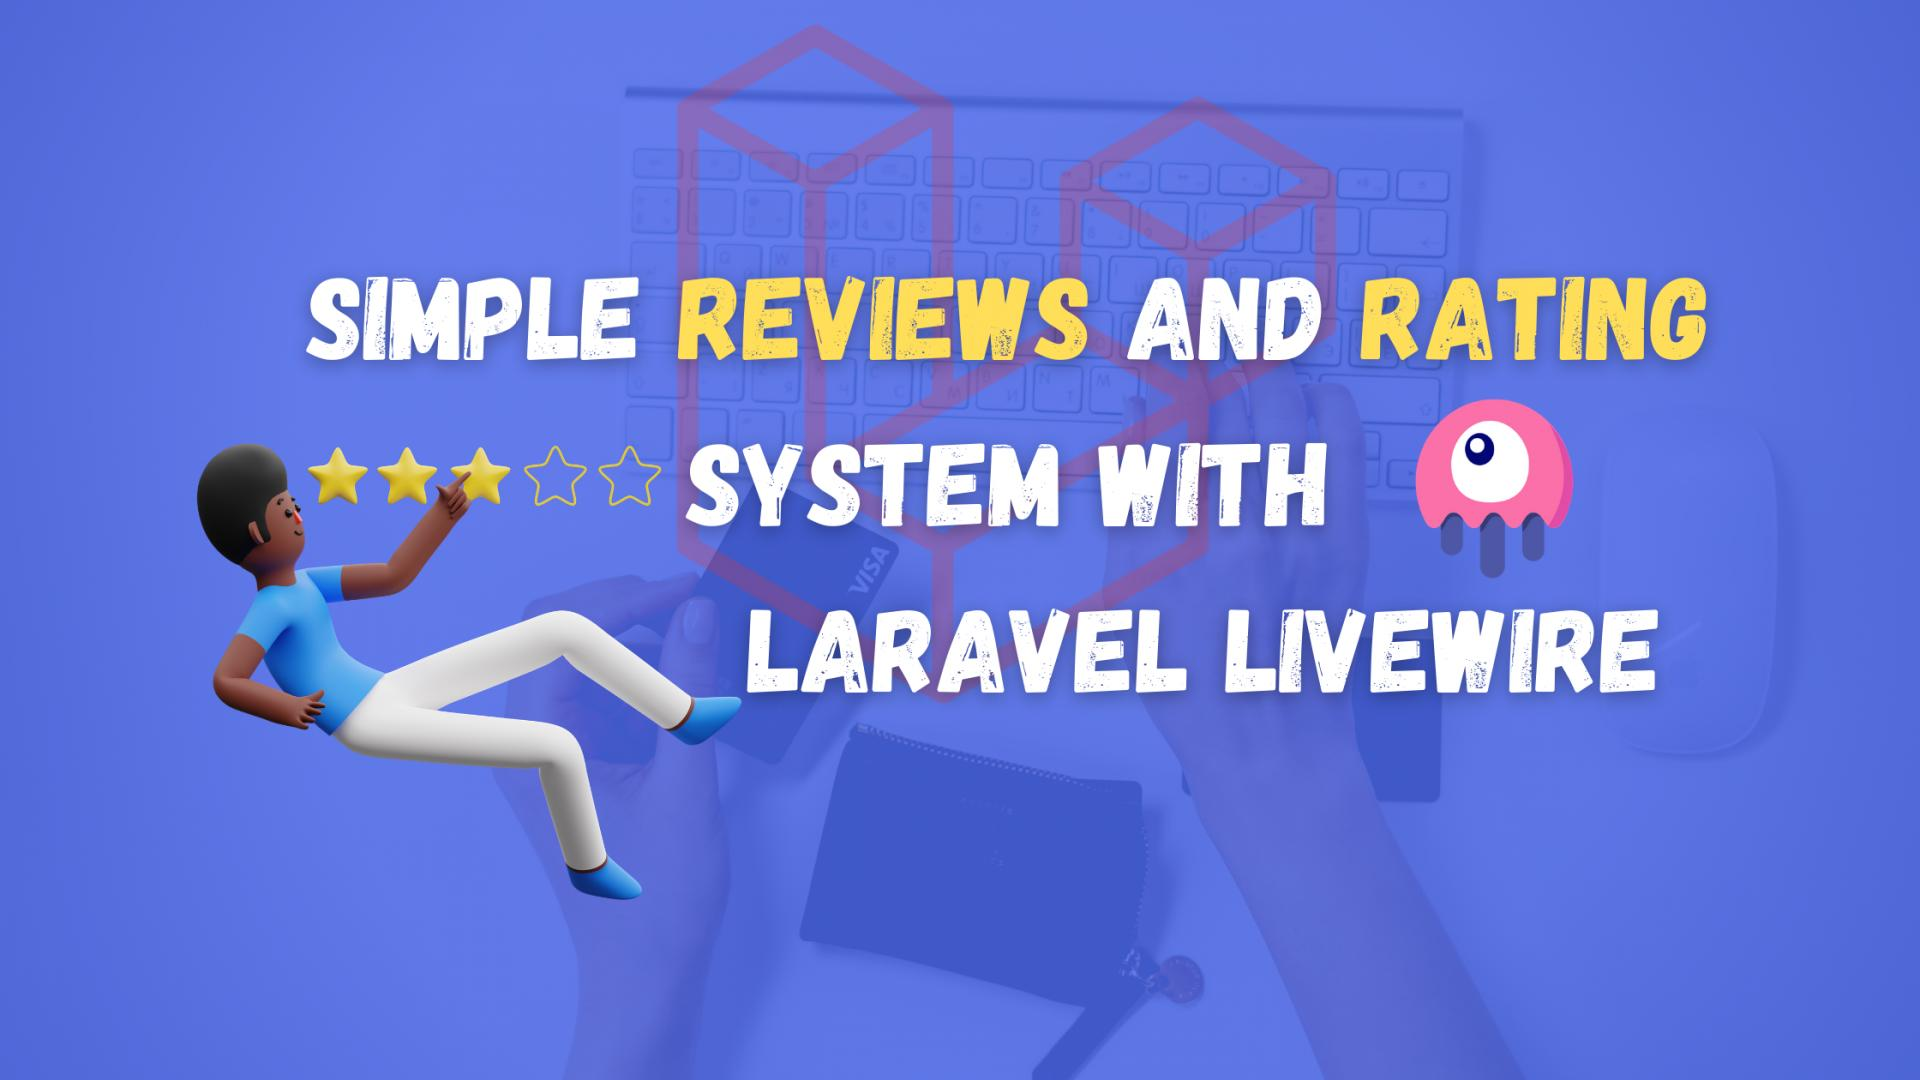 How to Build a Simple Reviews and Rating System with Livewire and Jetstream?